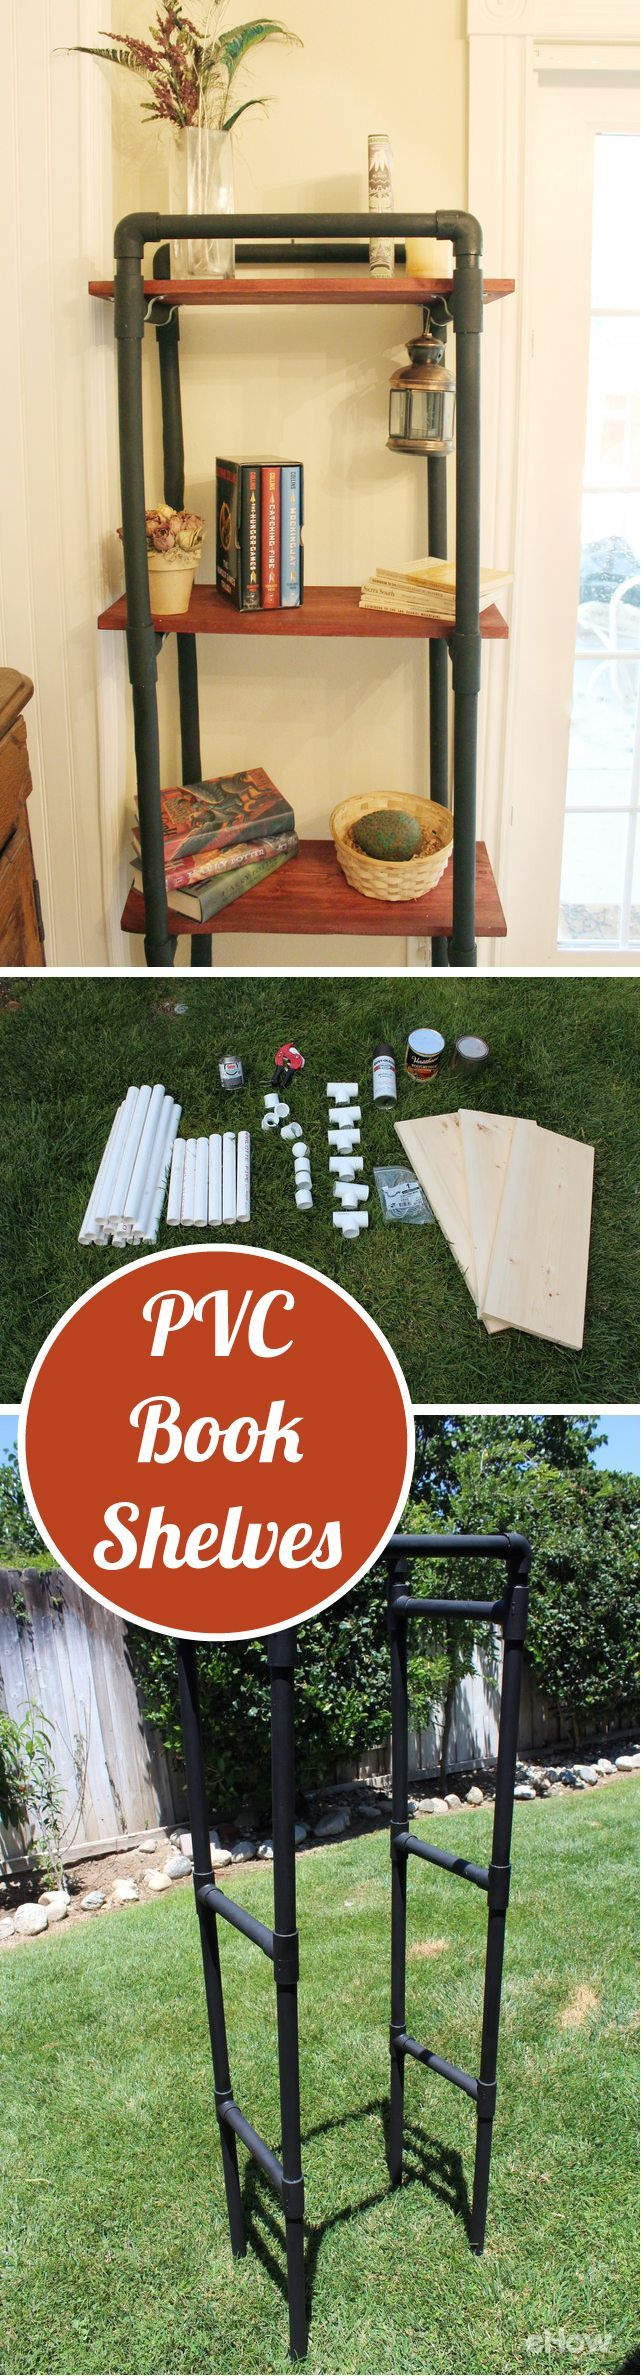 How to Make PVC Book Shelves 121